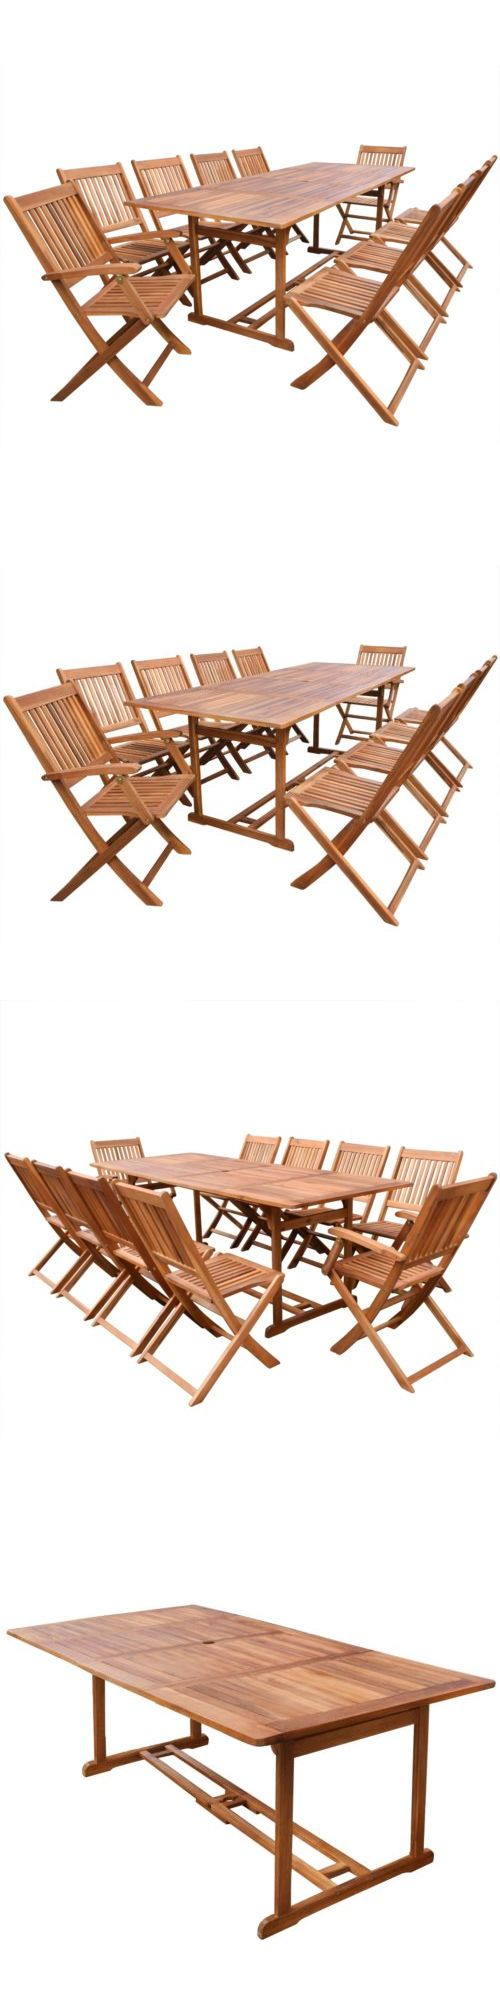 Wood dining with wrought iron quot clasp quot base very popular dining -  Wrought Iron Clasp Base Very Popular Dining Trend This Year See More Dining Sets 107578 Outdoor Patio Acacia Wood Dining Set 11 Piece Table Chair